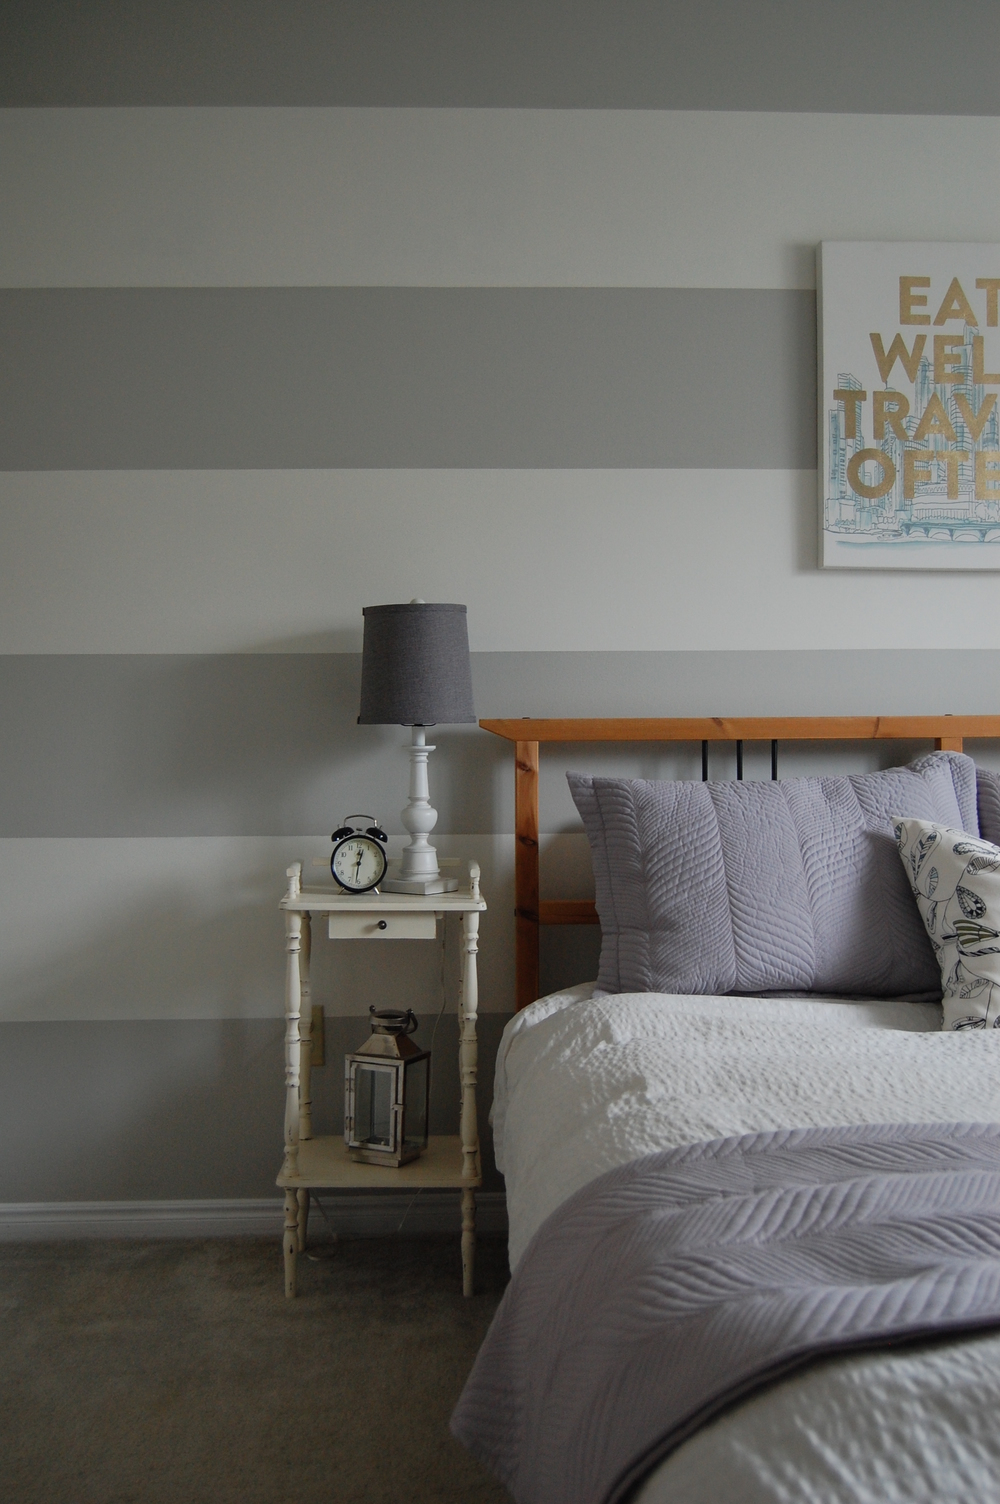 How to Paint a Striped Accent Wall